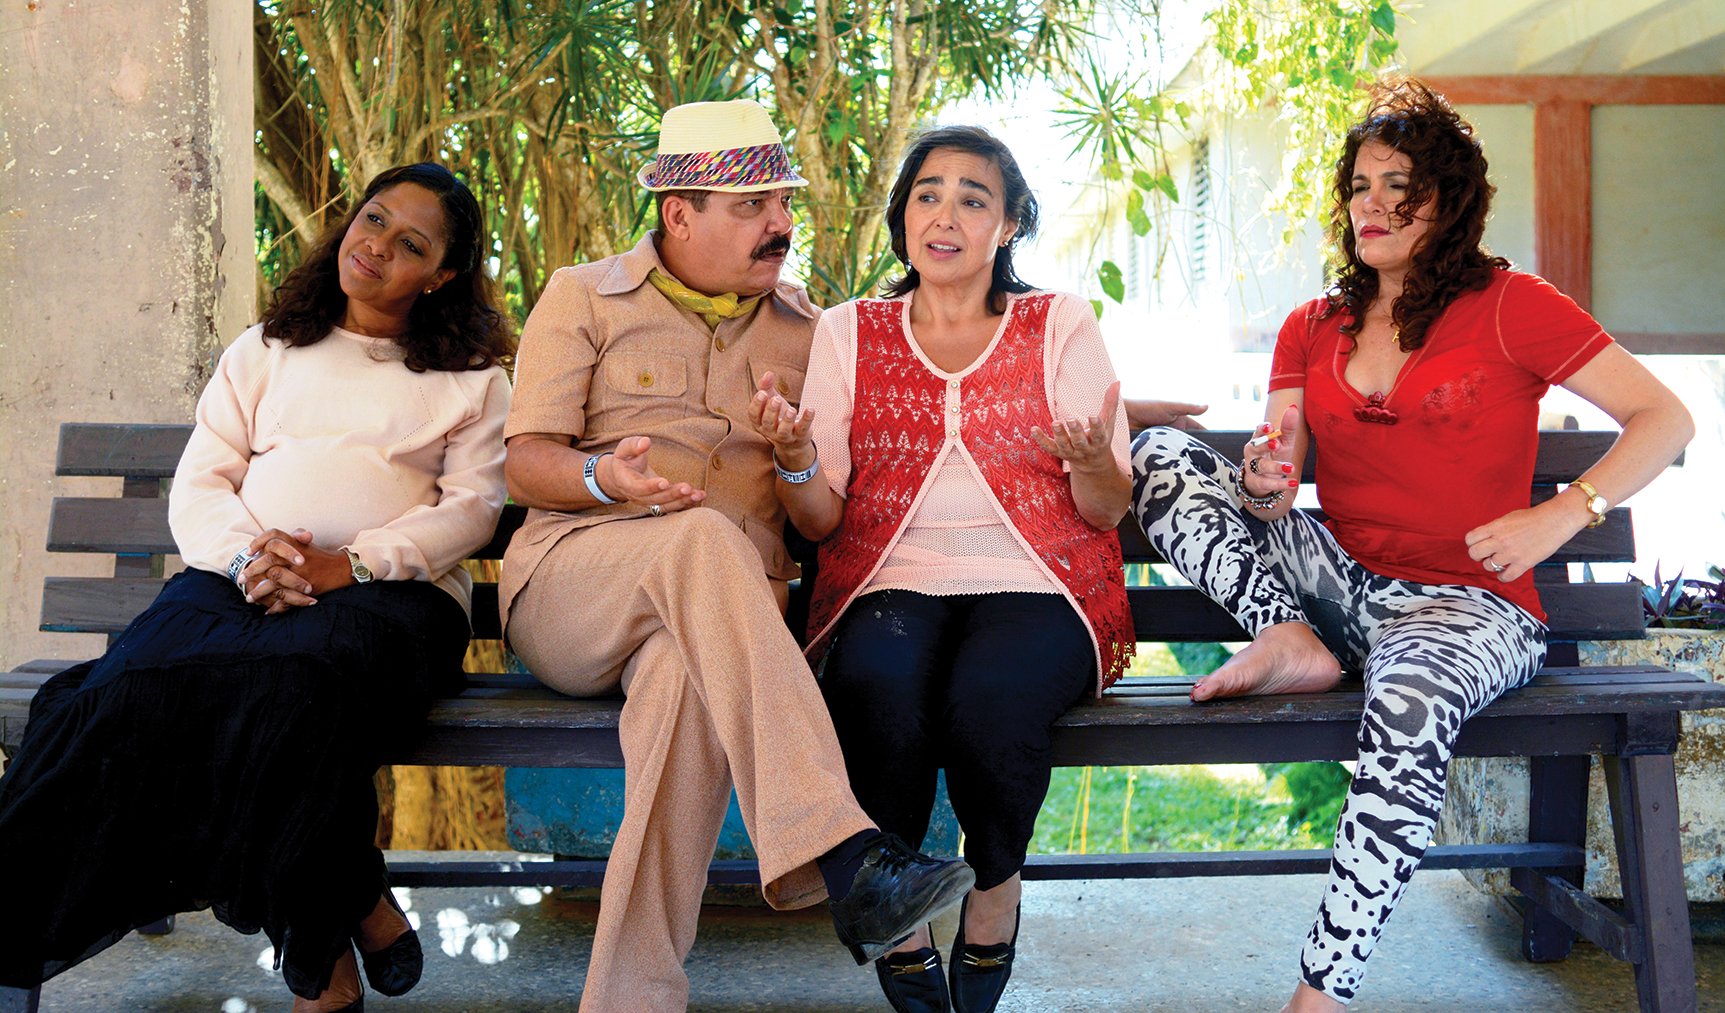 <p>&quot;An earthbound comedy with a keen grasp of human foibles and societal woes,&quot; according to The Hollywood Reporter, &quot;The Extraordinary Journey of Celeste Garcia&quot; is a sci-fi fantasy about a 16-year-old woman who feels unseen by everyone in her life. When the government reveals that aliens from the planet Gyrok have been living in Cuba and are taking select citizens back to their home planet, she unexpectedly finds herself chosen to make the intergalactic trek in the hopes of finding adventure and a more fulfilling life. (Image: SIFF)</p>